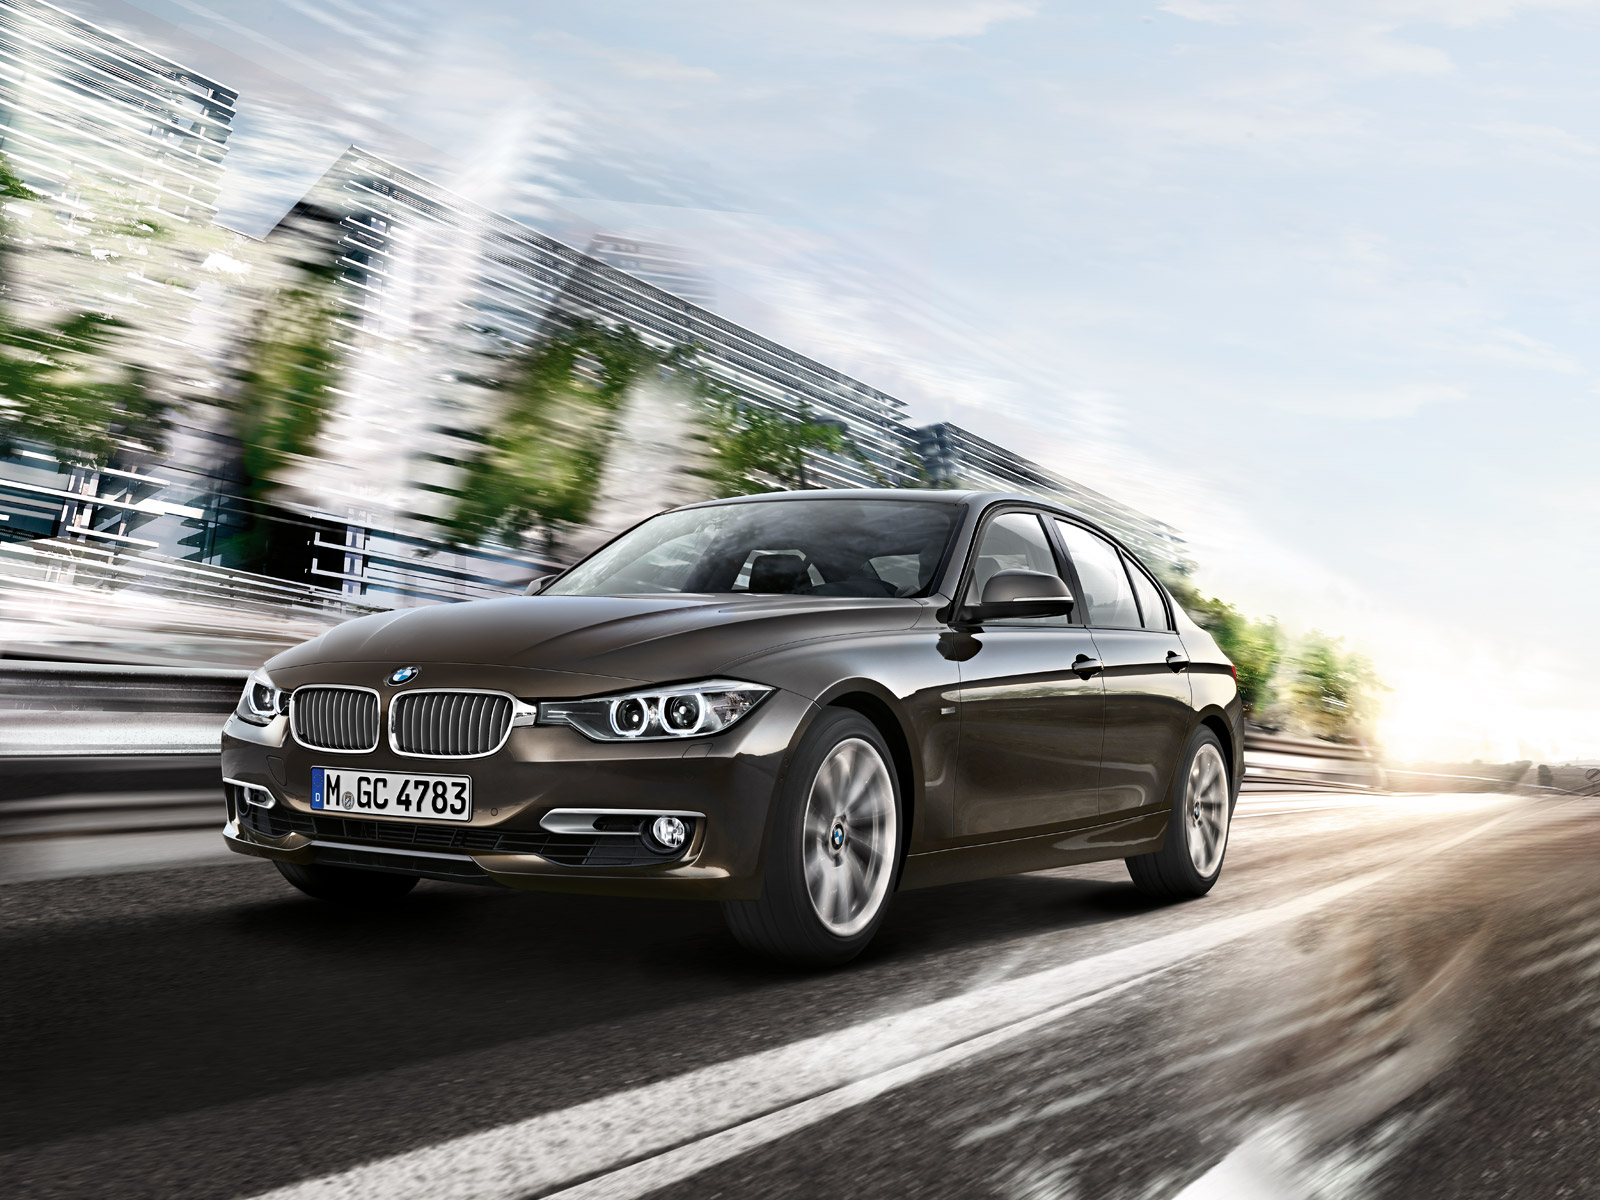 BMW_3series_wallpaper_14_1600